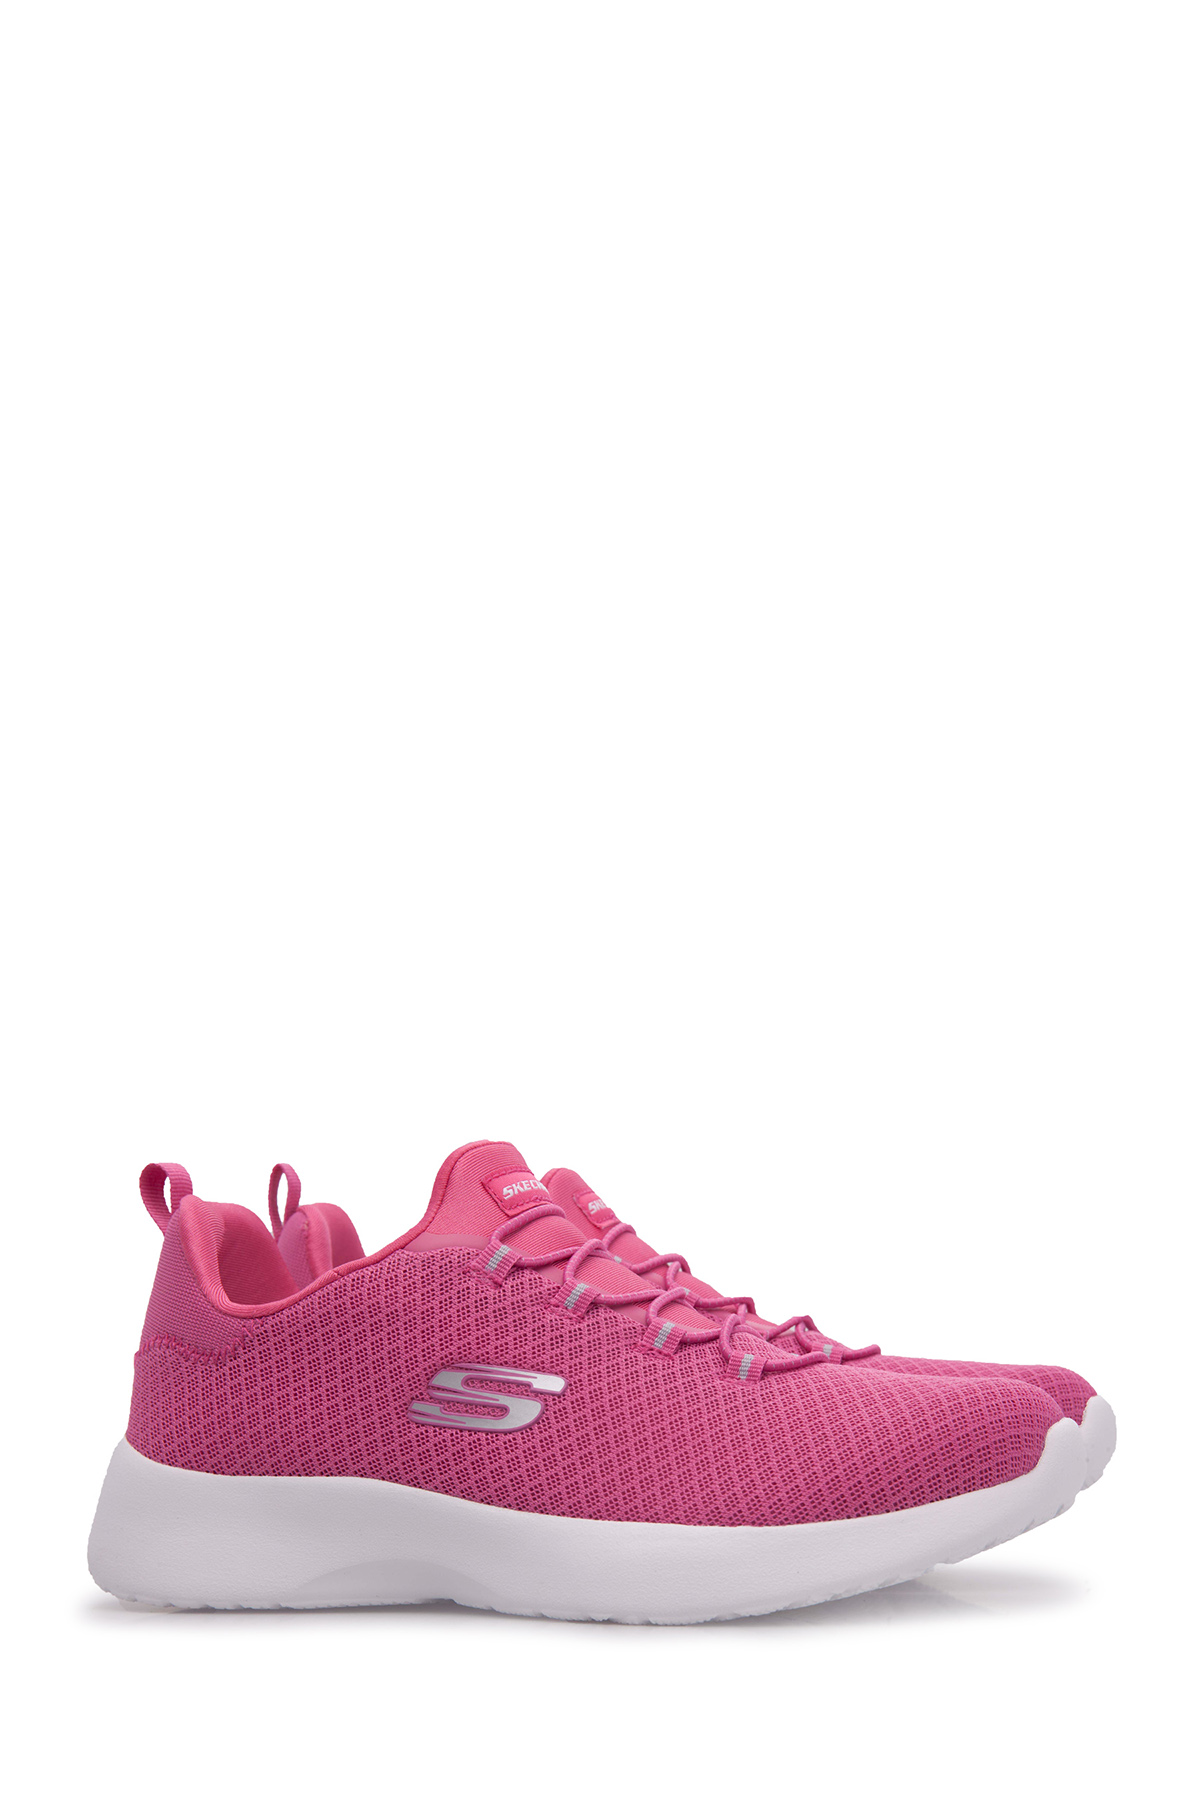 Skechers Dynamight Shoes WOMEN SHOES